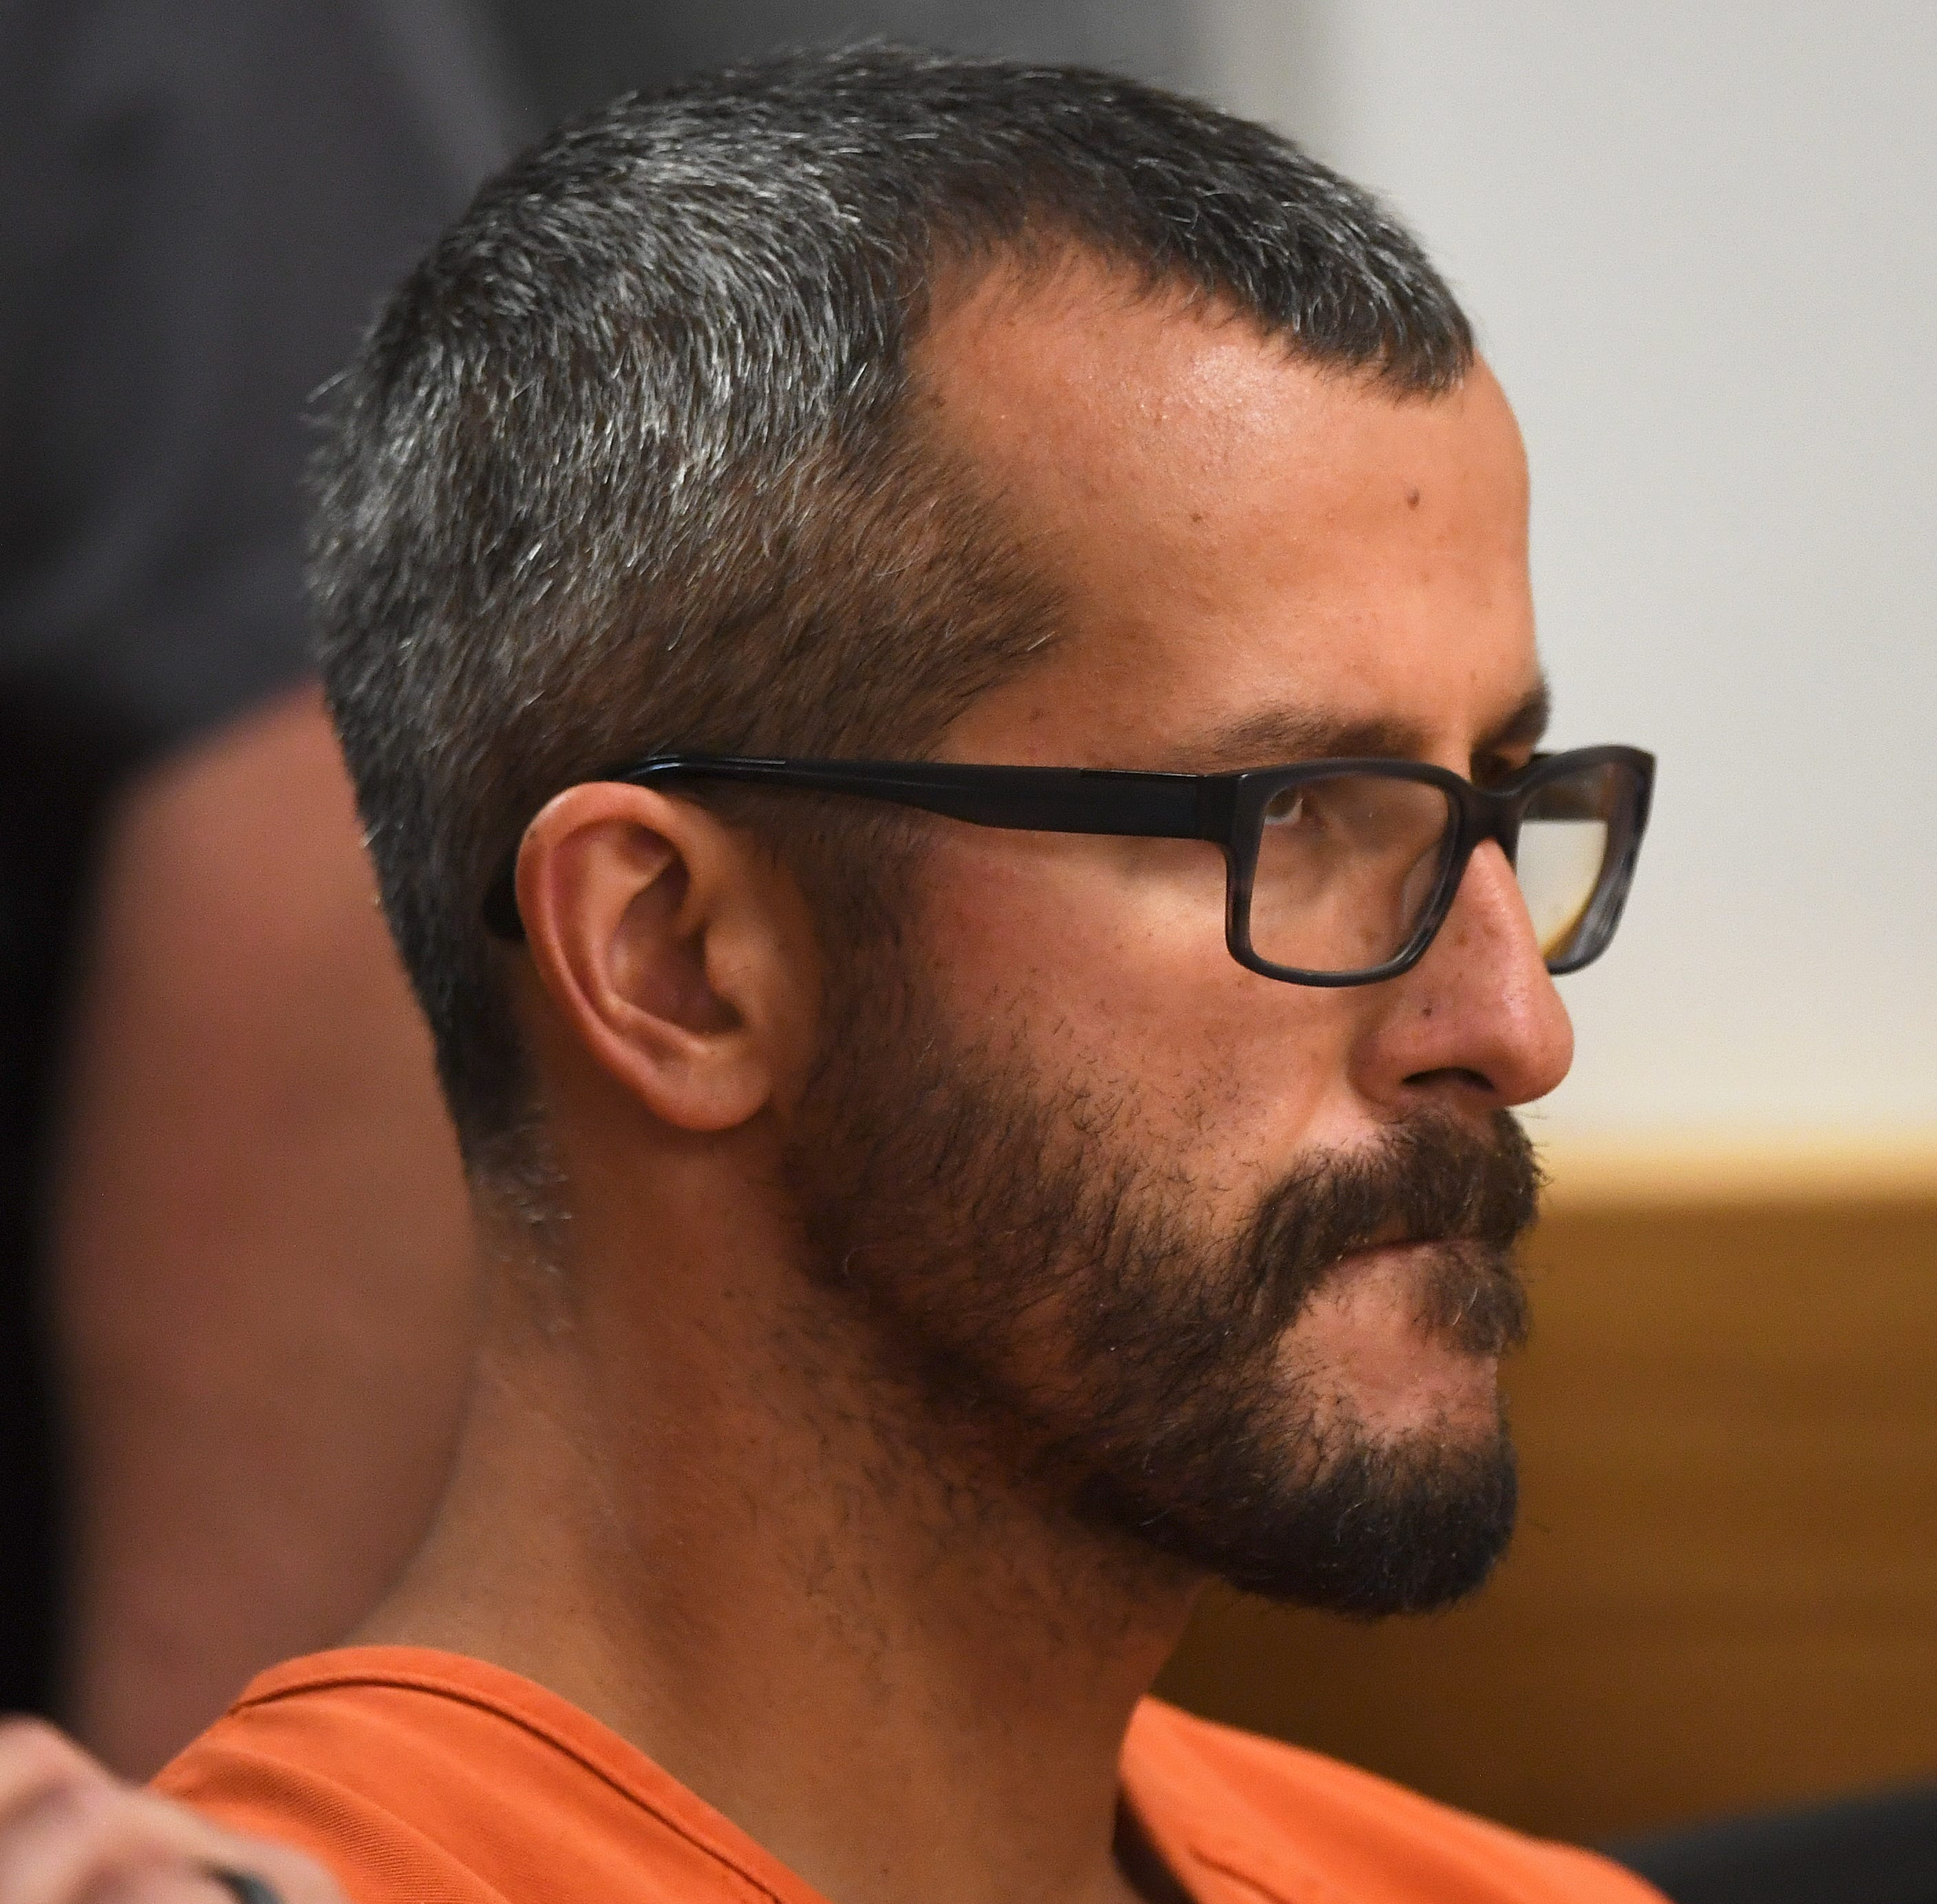 What to expect during Monday's sentencing of Chris Watts for the murder of Shanann Watts, 2 children